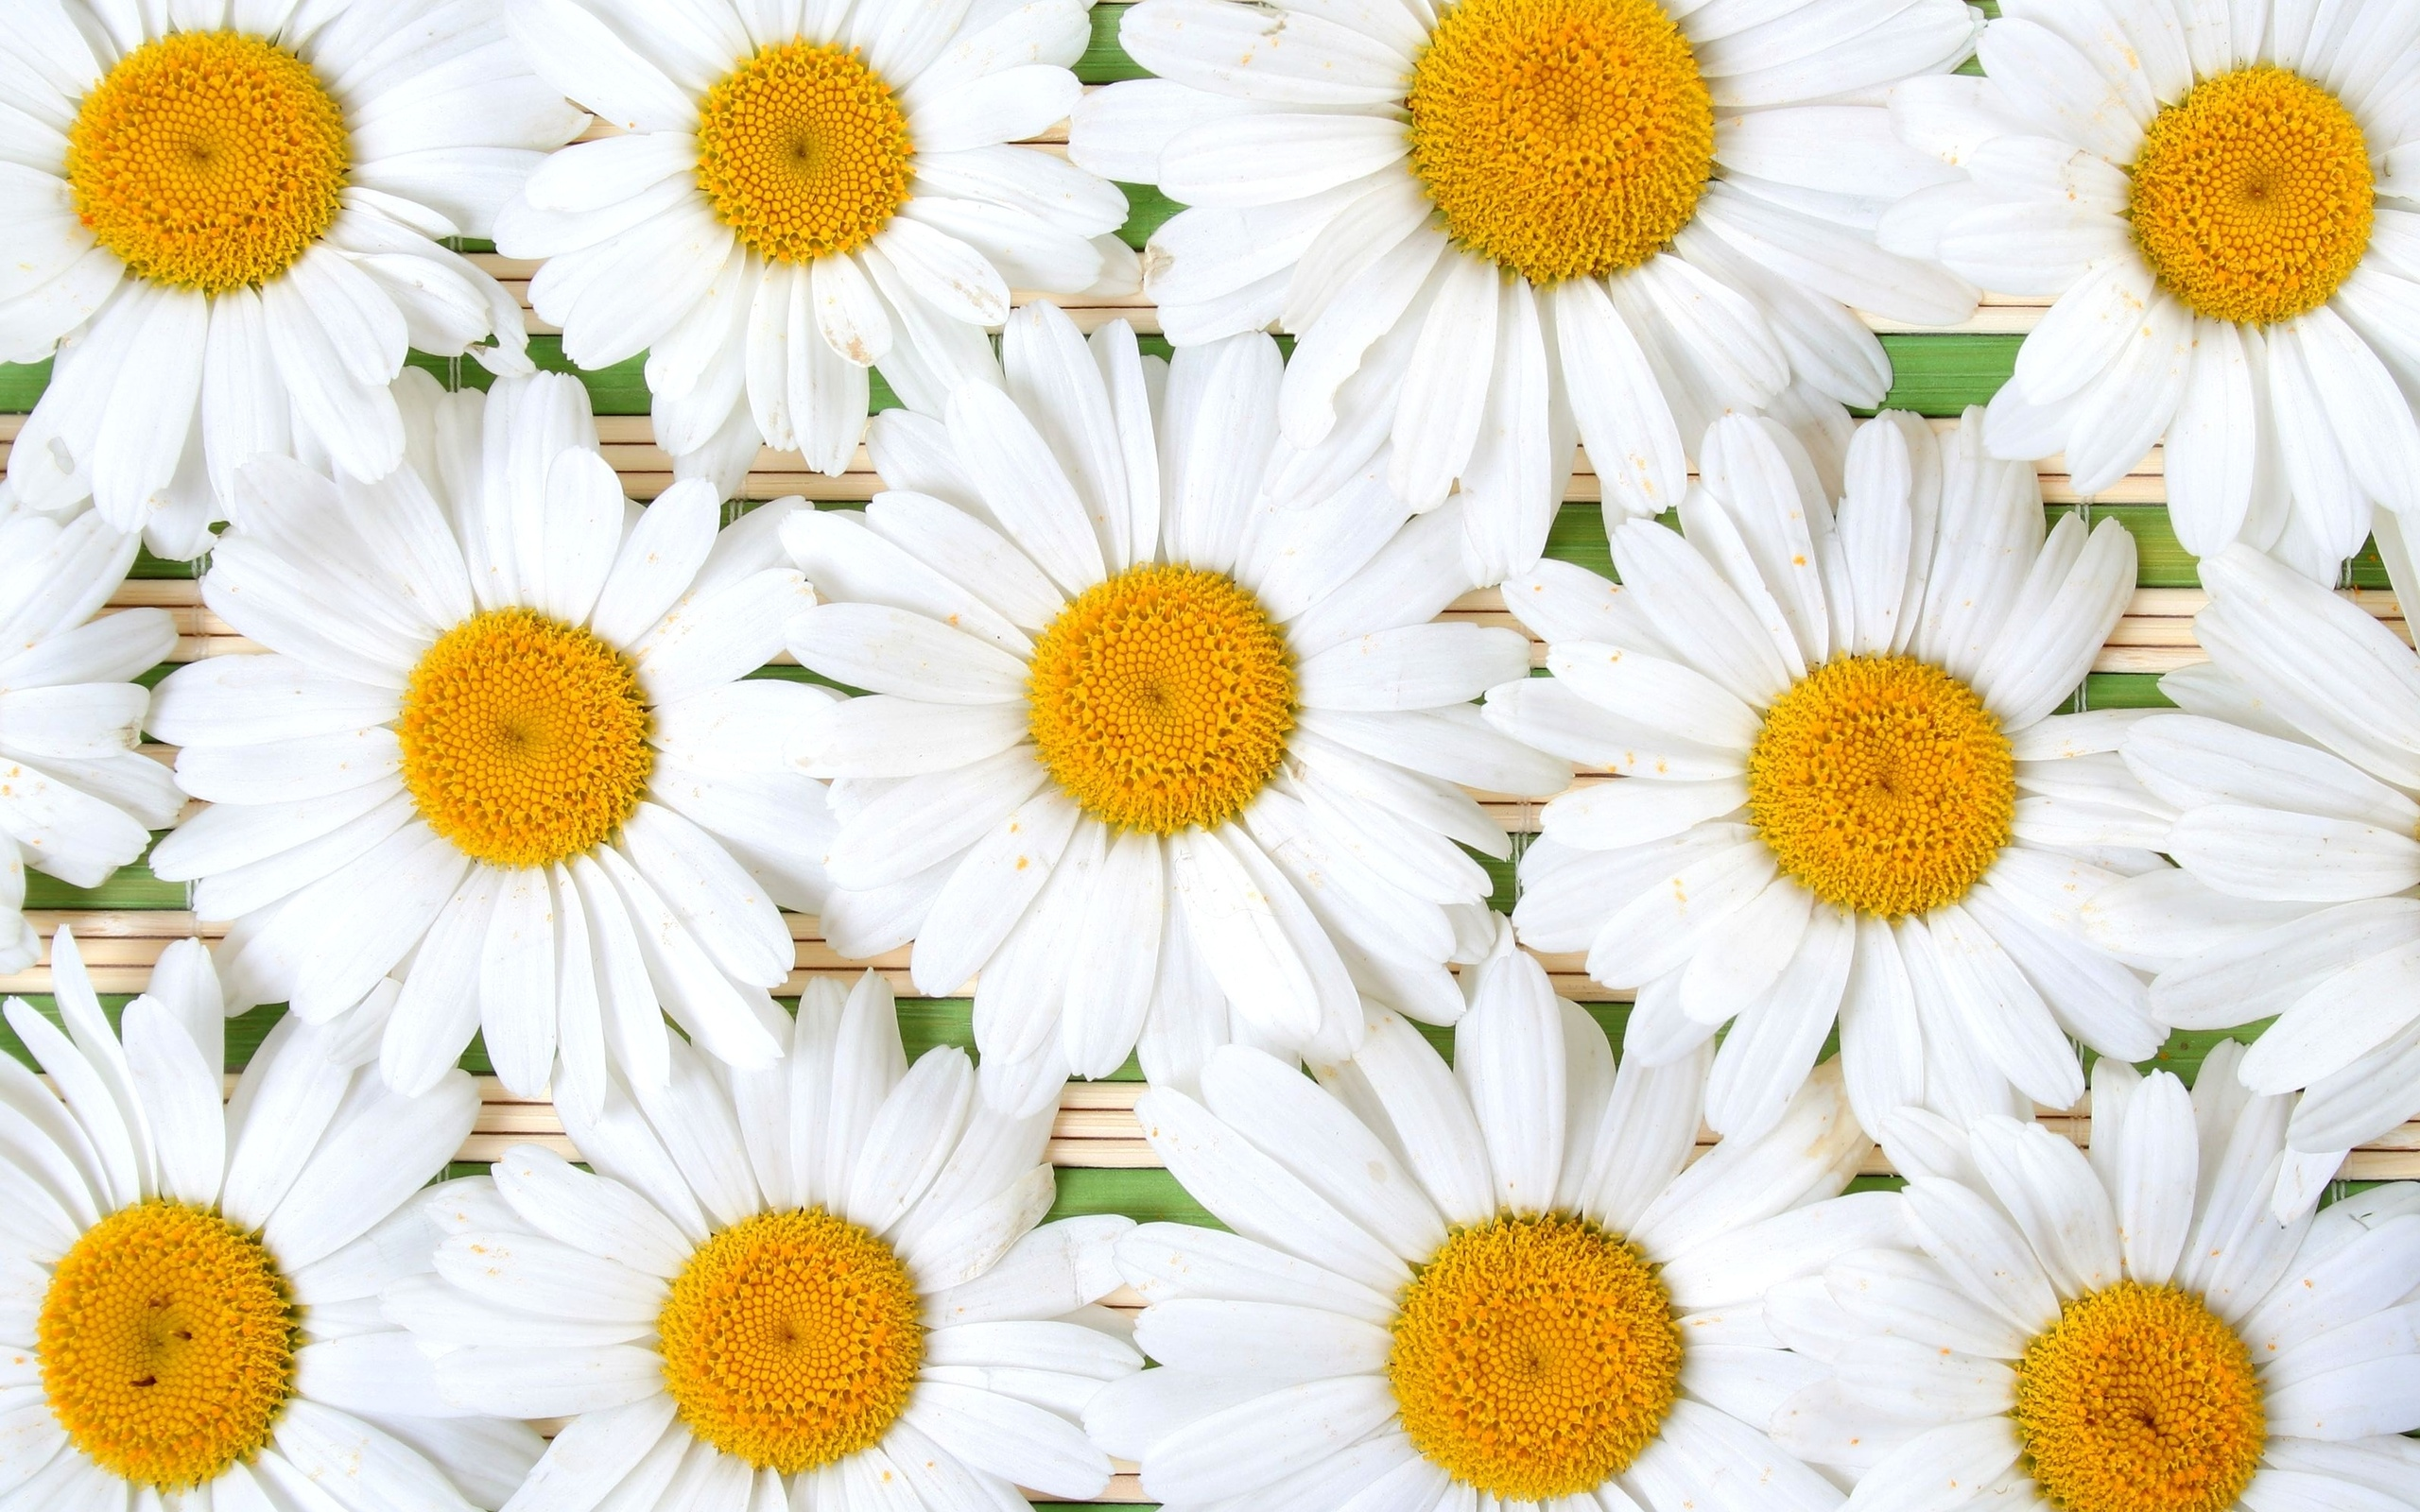 Daisy Wallpaper Iphone Pinit Gallery 2560x1600px